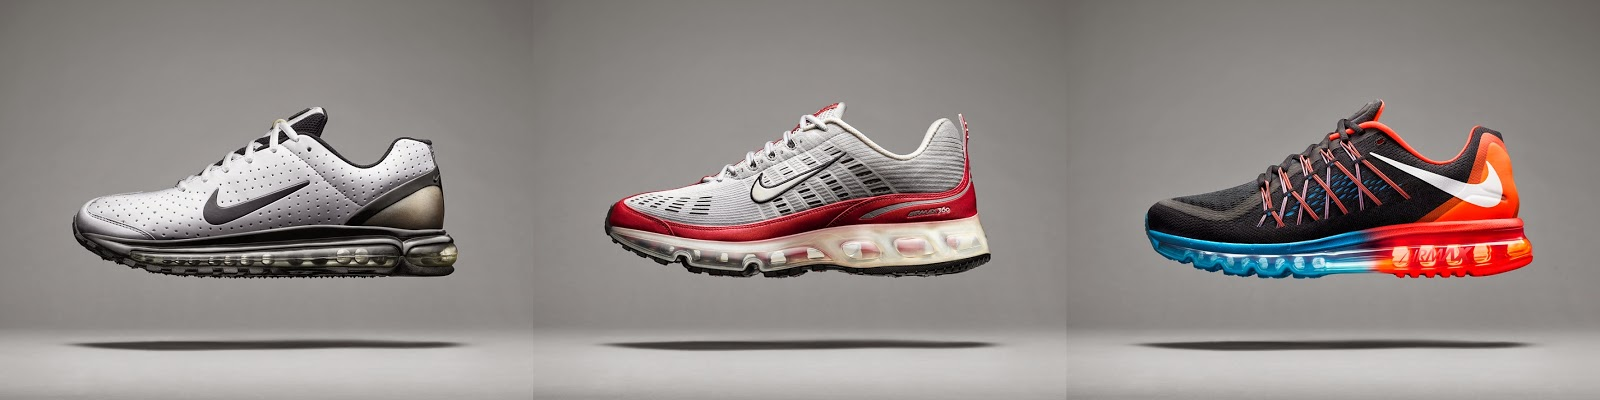 nike aire max a augment